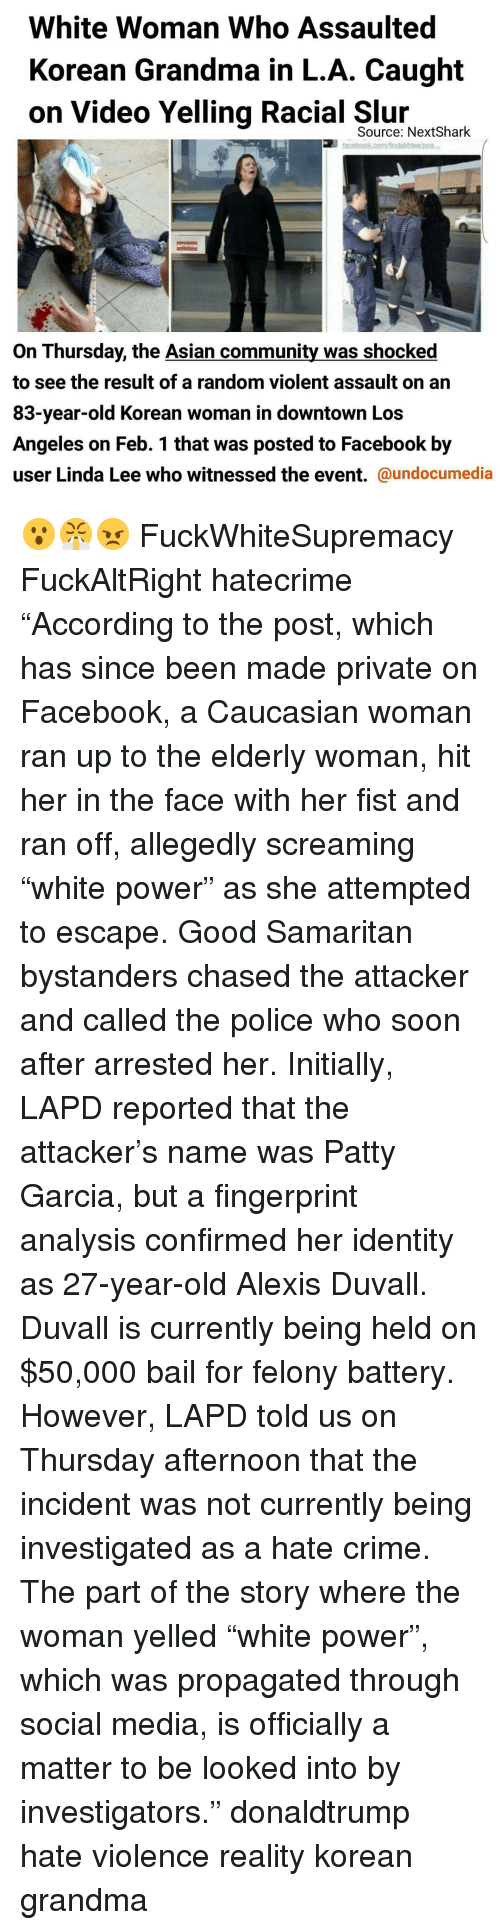 "Memes, Caucasian, and A Matter: White Woman Who Assaulted  Korean Grandma in L.A. Caught  on Video Yelling Racial Source: Next Shark  facebook comAndakhlealpos,  On Thursday, the Asian community was shocked  to see the result of a random violent assault on an  83-year-old Korean woman in downtown Los  Angeles on Feb. 1 that was posted to Facebook by  user Linda Lee who witnessed the event.  @undocumedia 😮😤😠 FuckWhiteSupremacy FuckAltRight hatecrime ""According to the post, which has since been made private on Facebook, a Caucasian woman ran up to the elderly woman, hit her in the face with her fist and ran off, allegedly screaming ""white power"" as she attempted to escape. Good Samaritan bystanders chased the attacker and called the police who soon after arrested her. Initially, LAPD reported that the attacker's name was Patty Garcia, but a fingerprint analysis confirmed her identity as 27-year-old Alexis Duvall. Duvall is currently being held on $50,000 bail for felony battery. However, LAPD told us on Thursday afternoon that the incident was not currently being investigated as a hate crime. The part of the story where the woman yelled ""white power"", which was propagated through social media, is officially a matter to be looked into by investigators."" donaldtrump hate violence reality korean grandma"